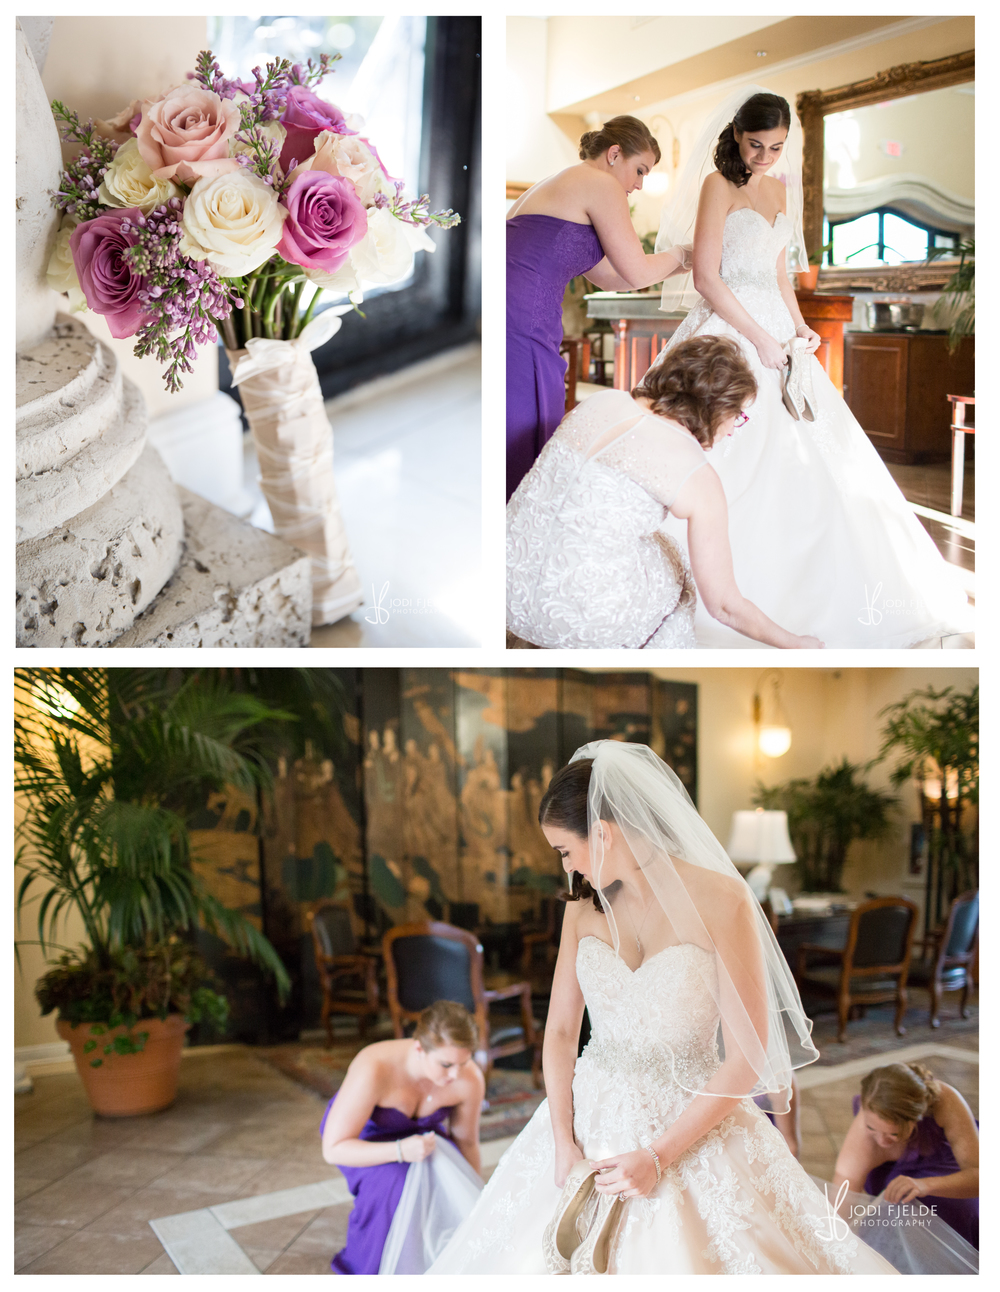 Benvenuto_Palm_Beach_Wedding_Jewish_Michelle & Jason_Jodi_Fjedle_Photography 17.jpg